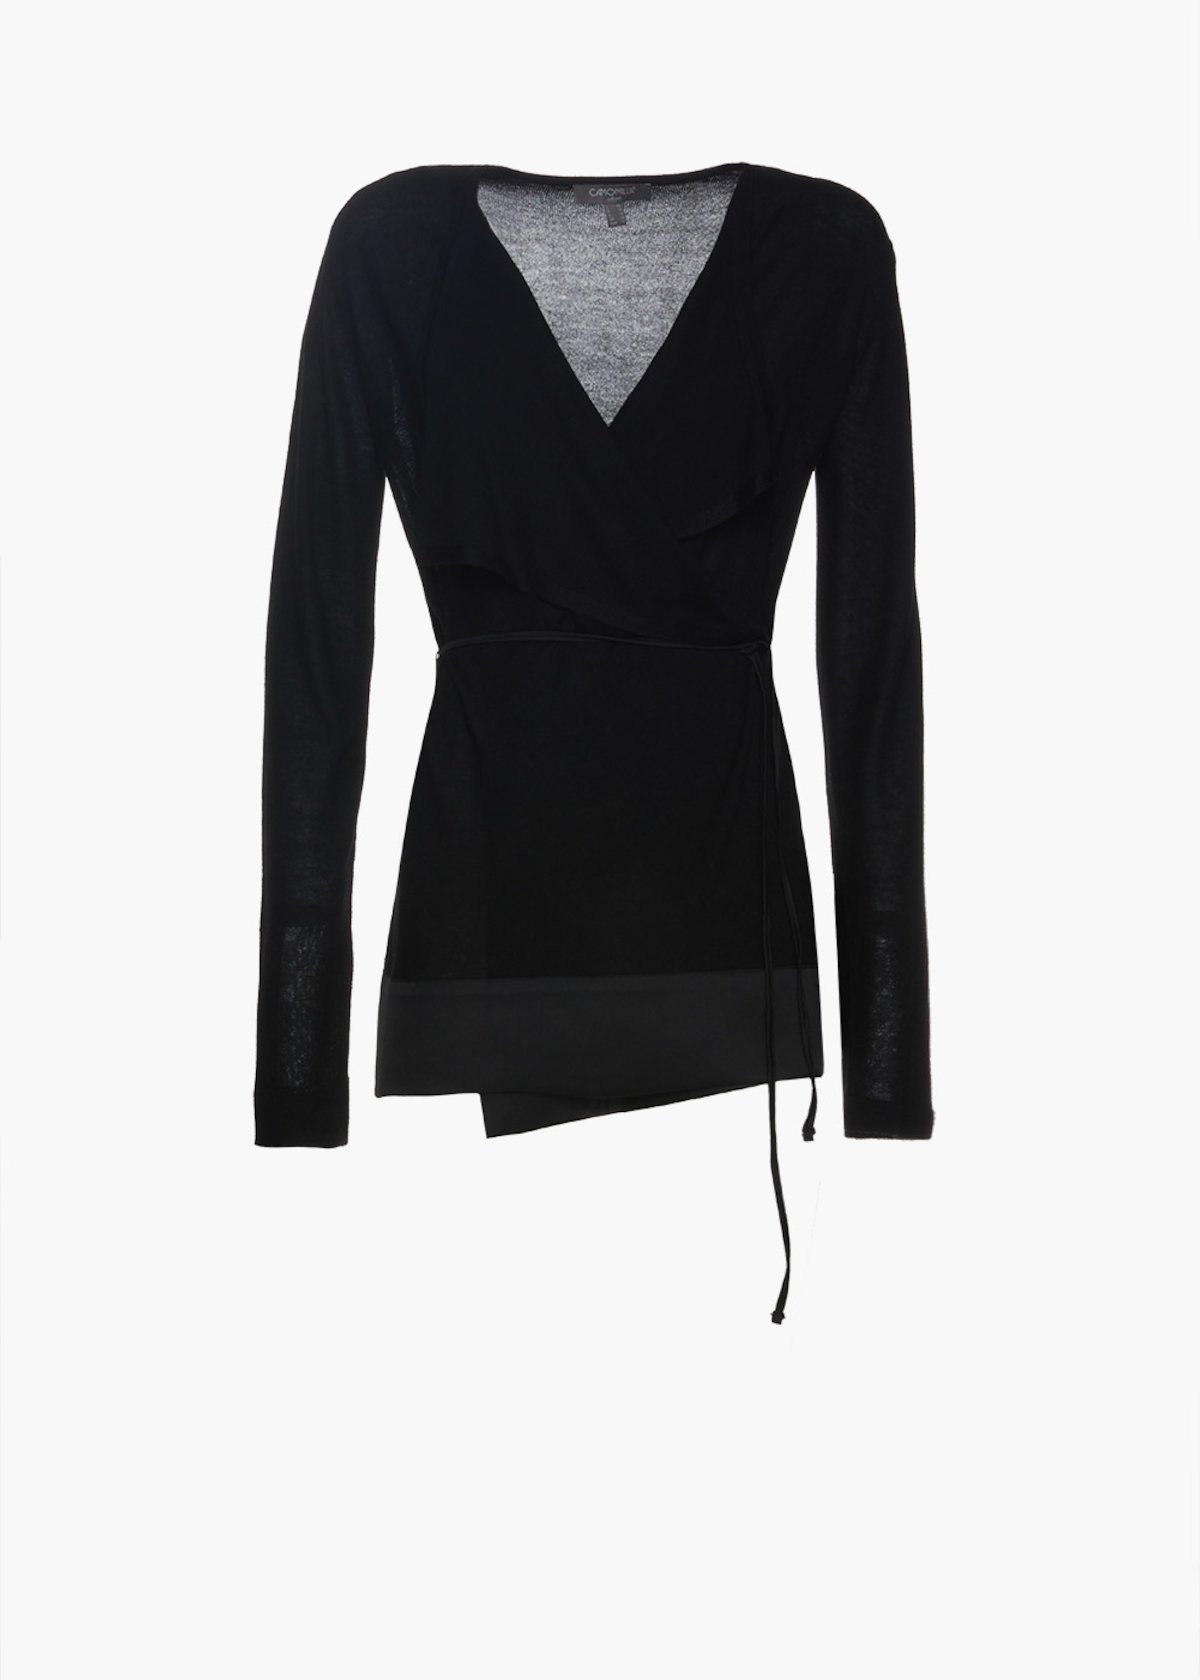 Knitting cardigan Camy with satin detail - Black - Woman